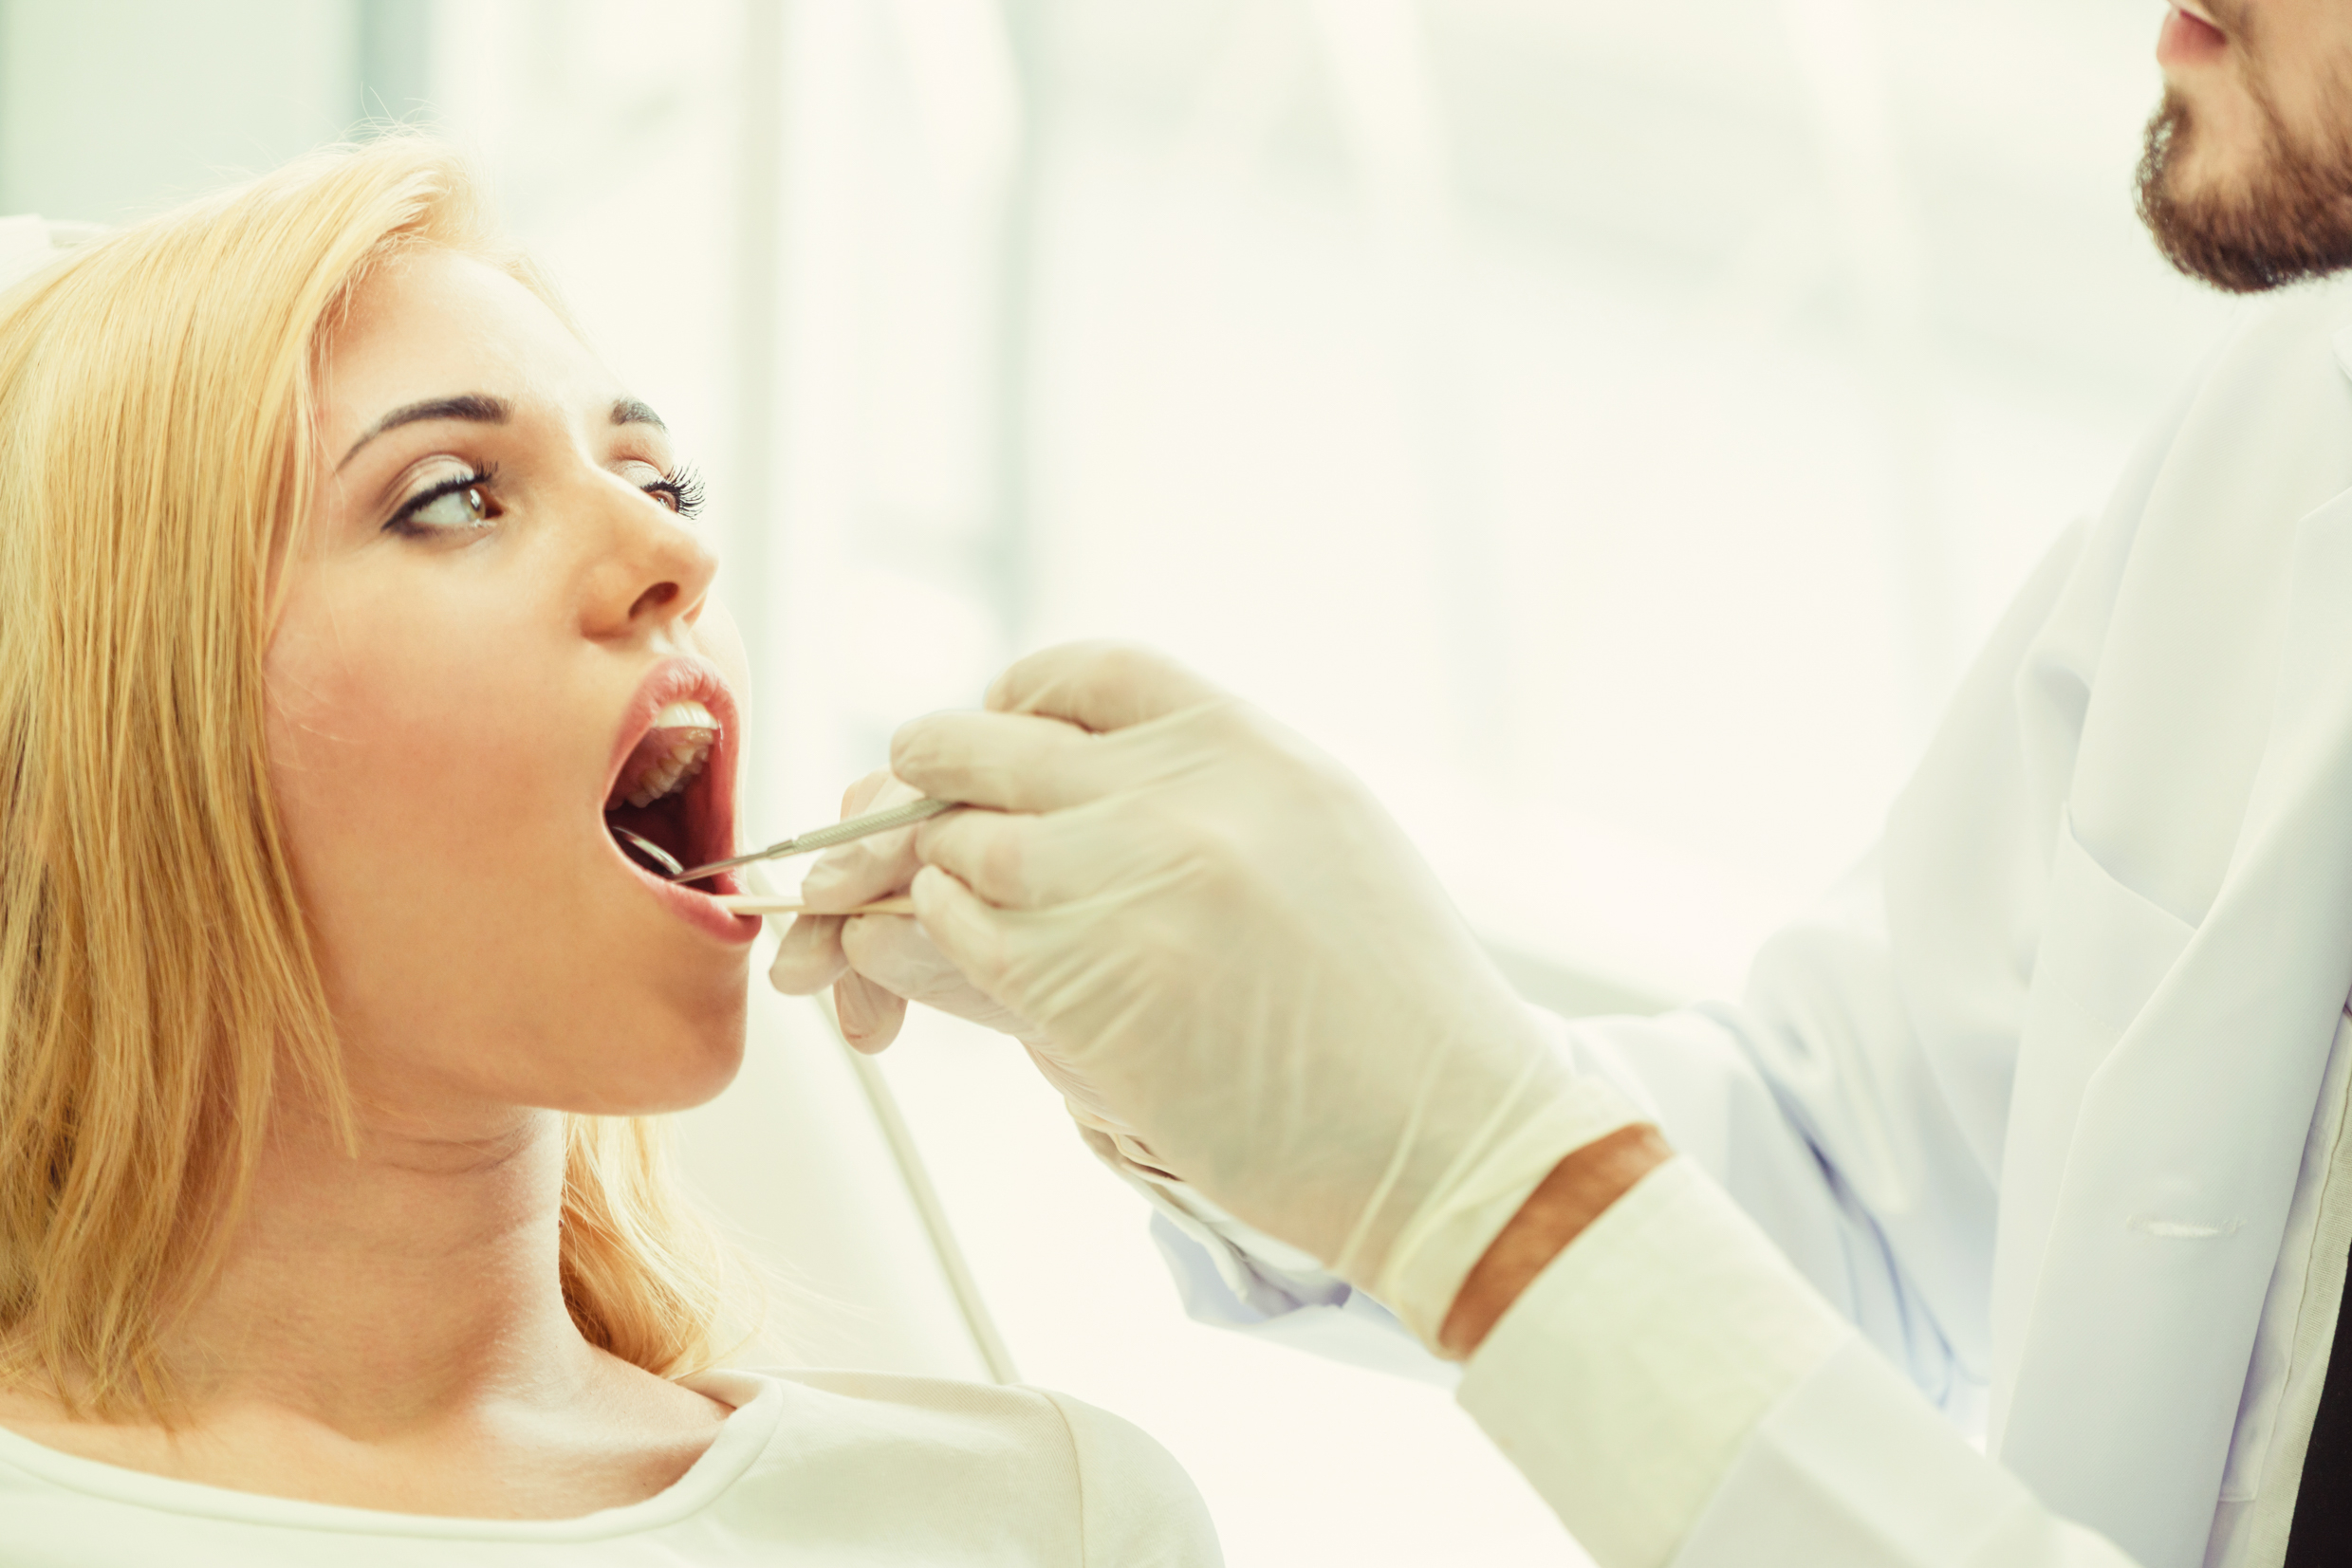 Dentist examining a patient's cheek for oral cancer